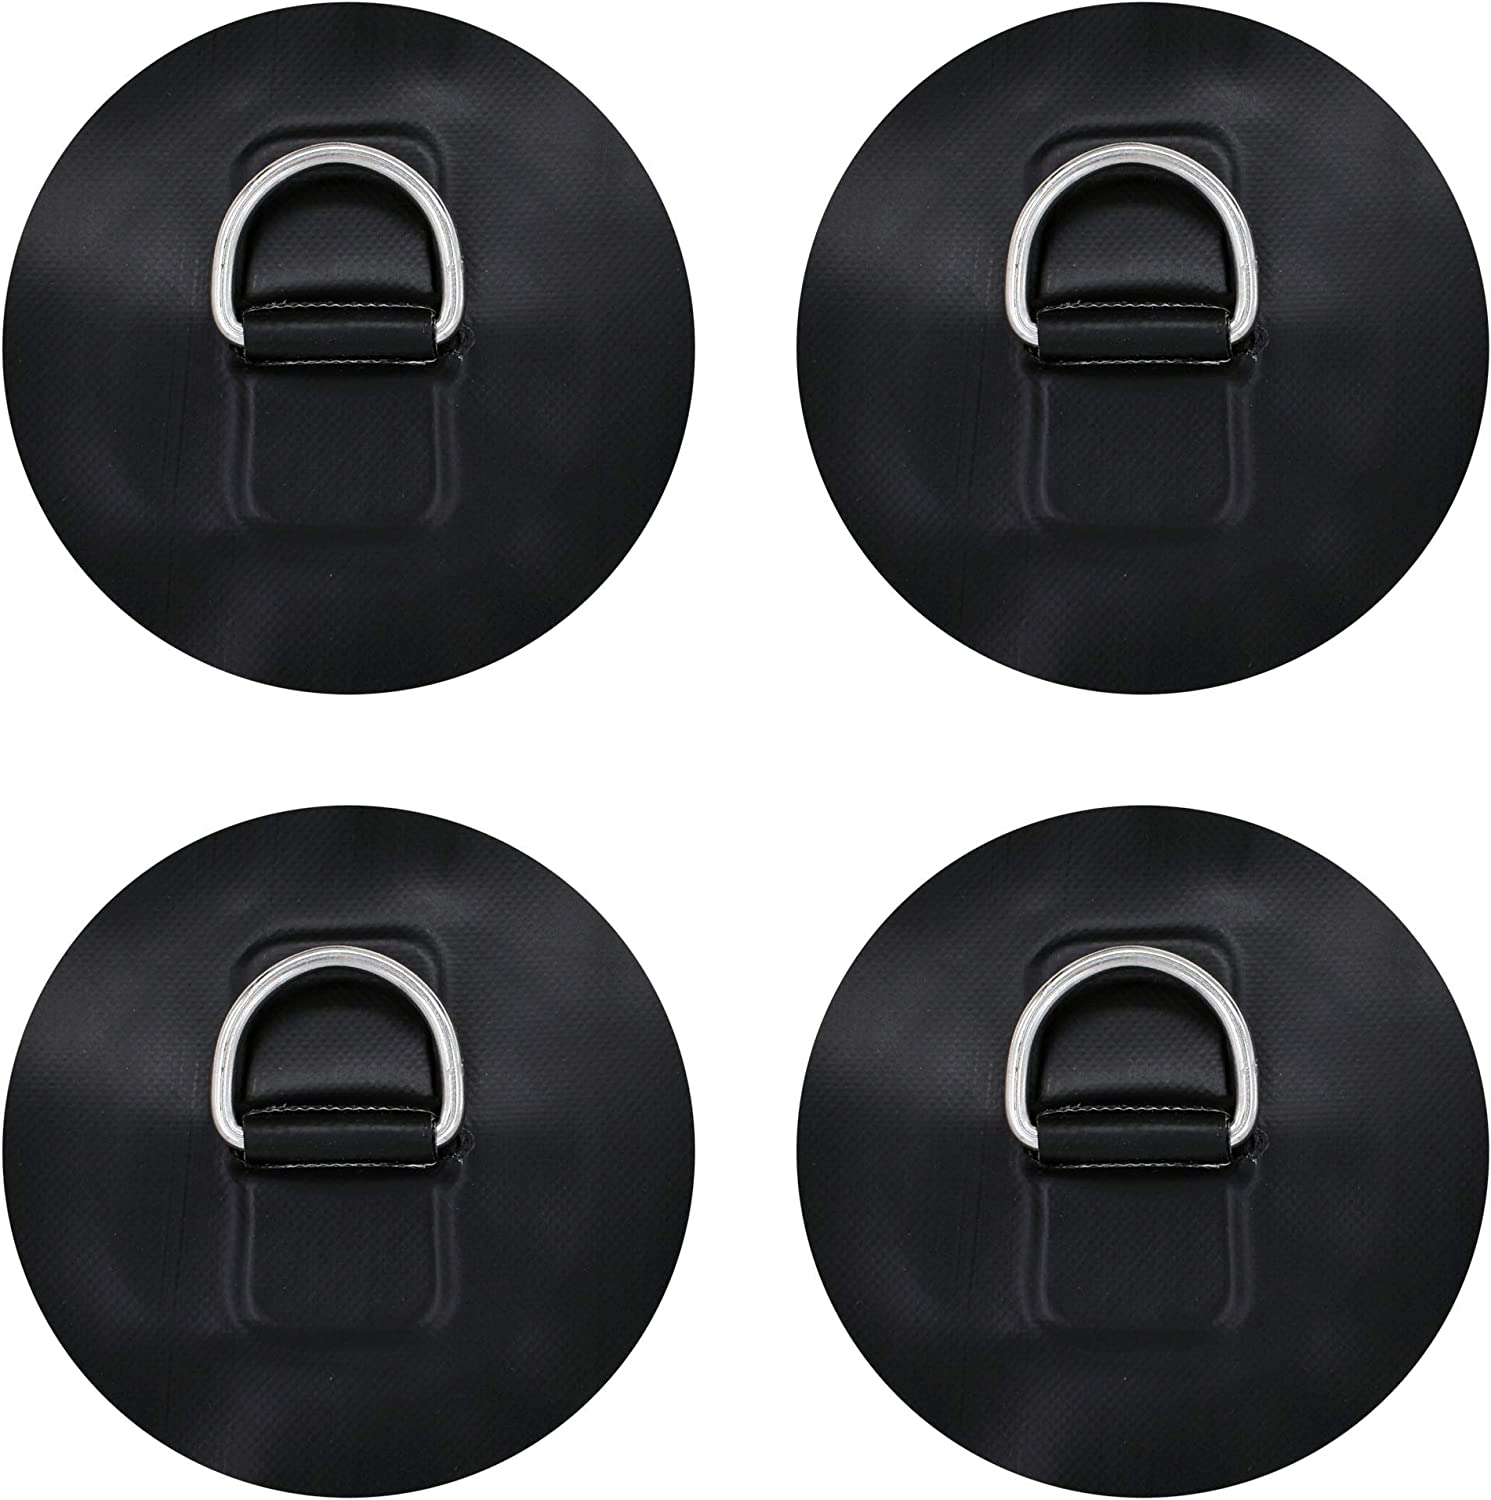 2pcs 8cm Stainless Steel D-ring Pad//Patch for PVC Inflatable Boat Raft Kayak